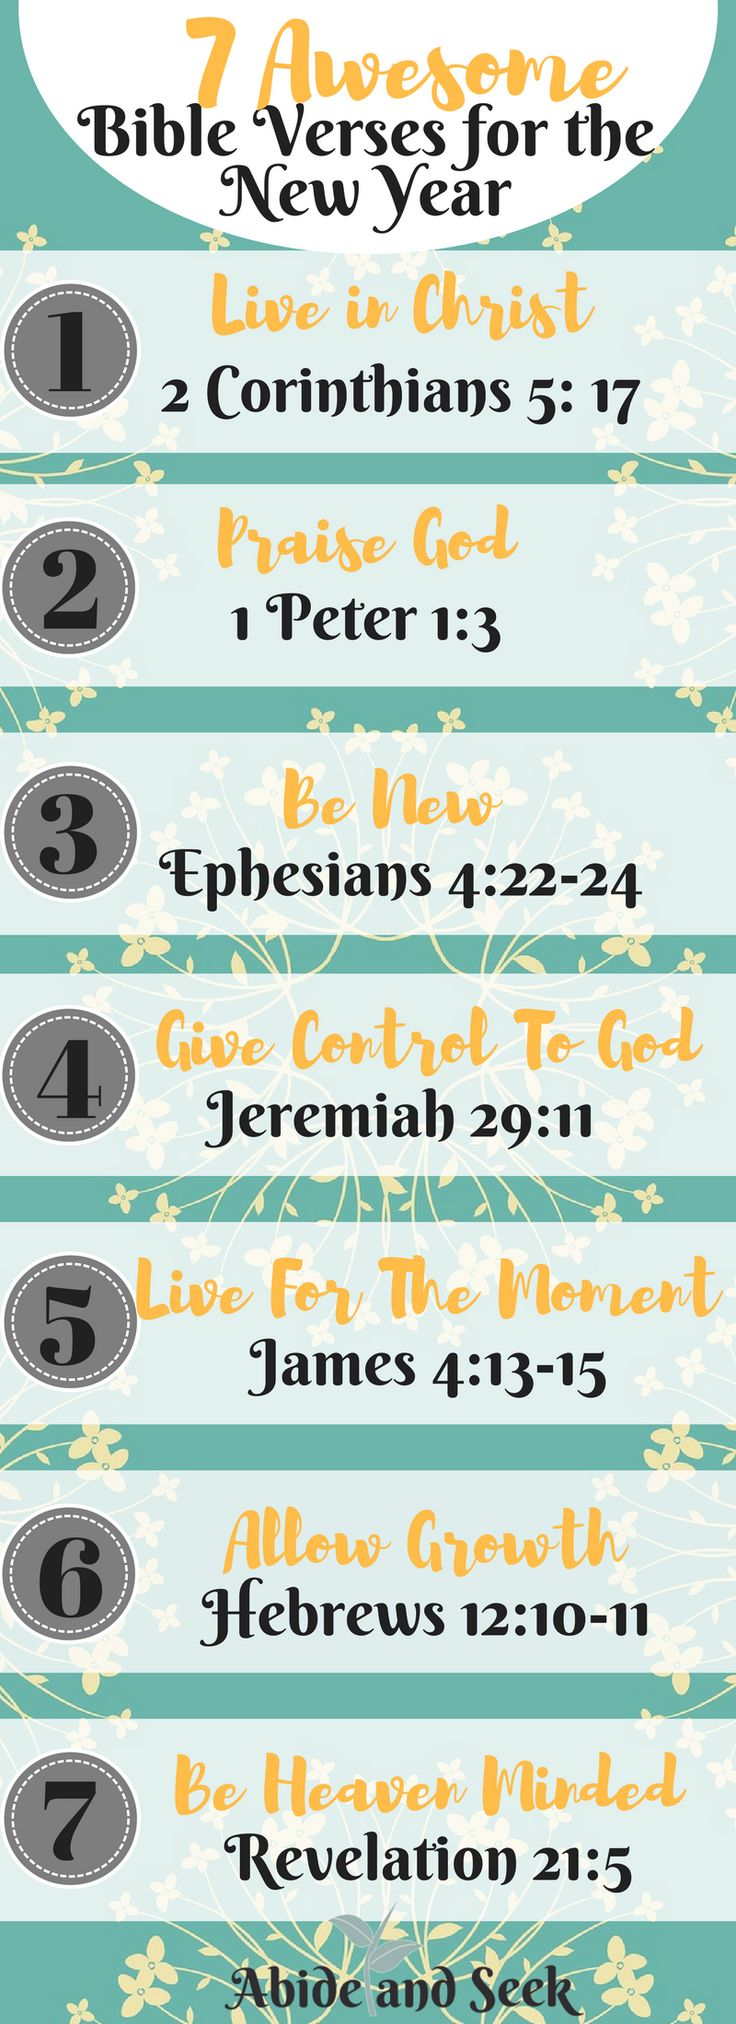 Another year has passed us by and 2018 is here! It's a new year and time for new and exciting things. These 7 verses will help you kick off the new year in a powerful way.